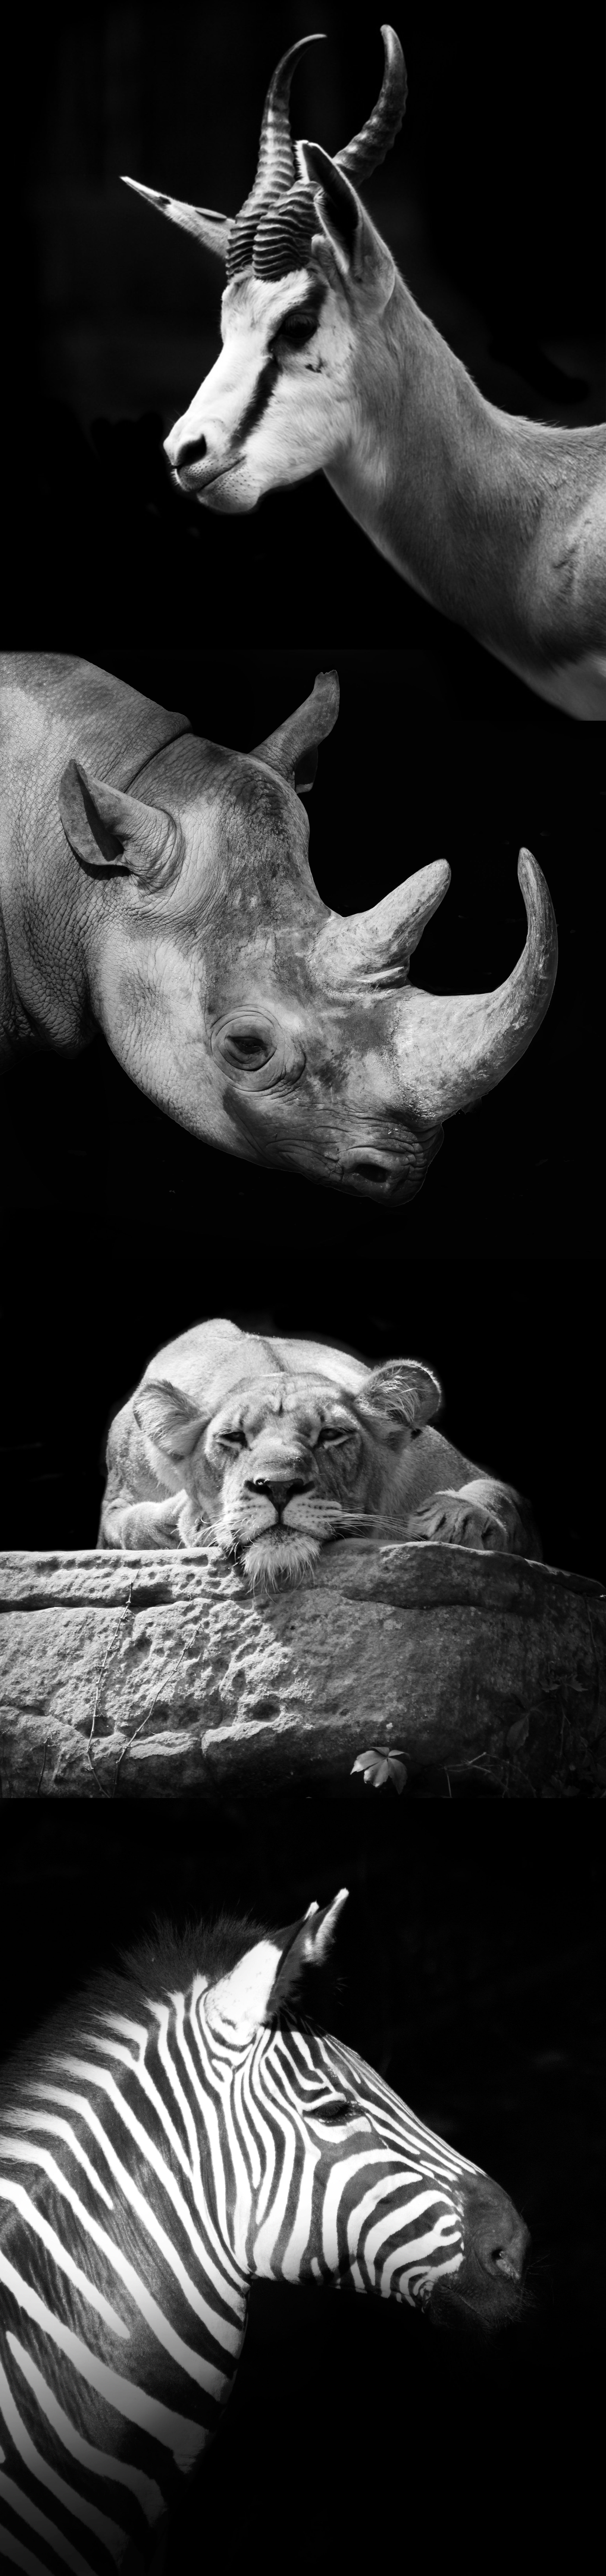 Love these African animals in black and white! So stunning